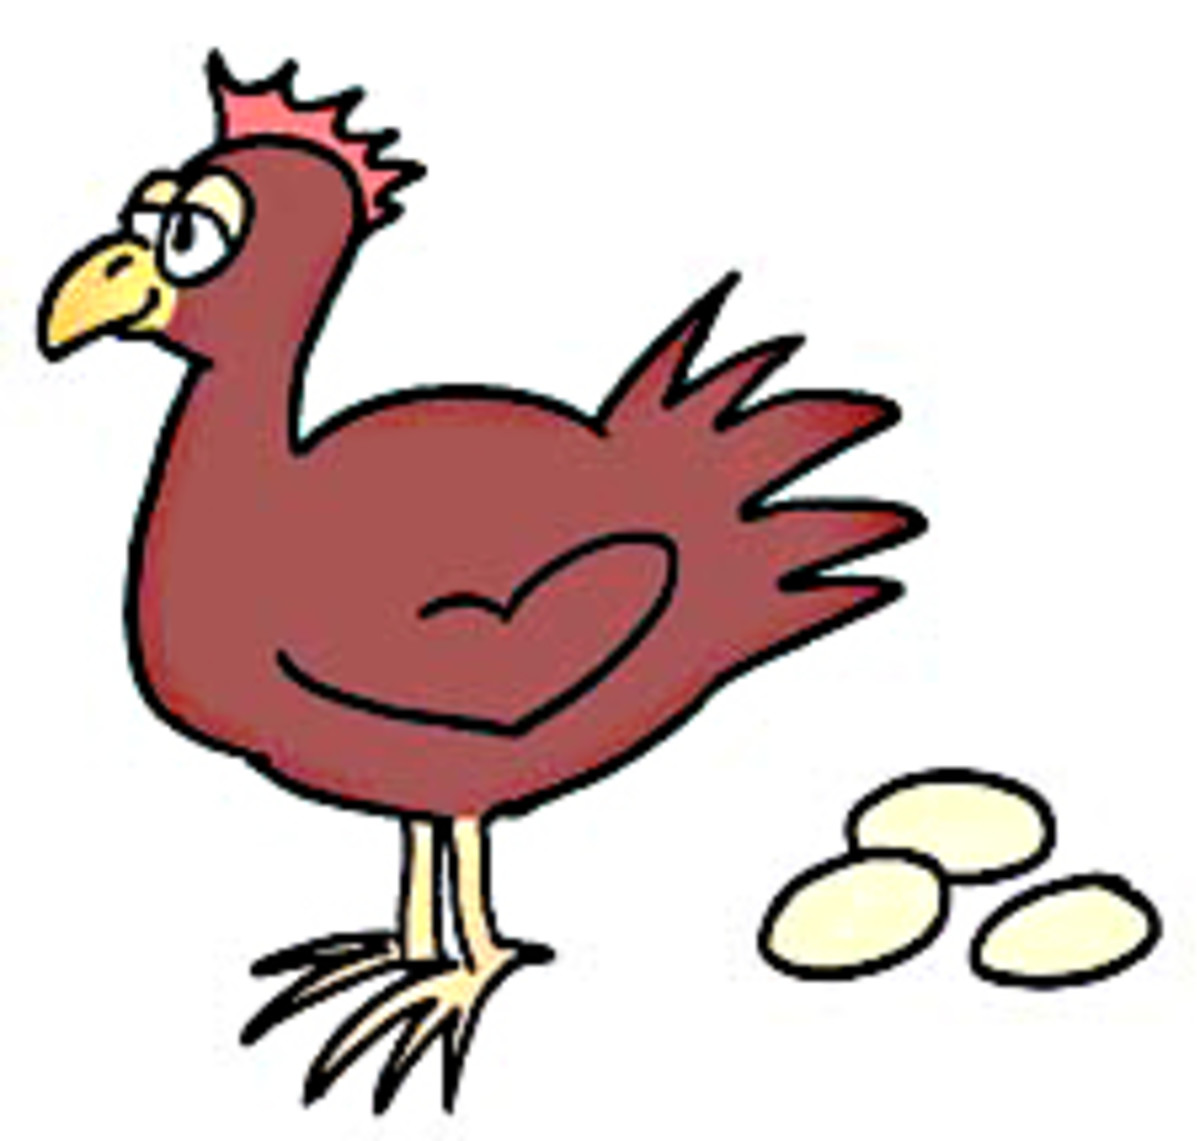 The Chicken and the Egg - Which came First? An Accurate, but